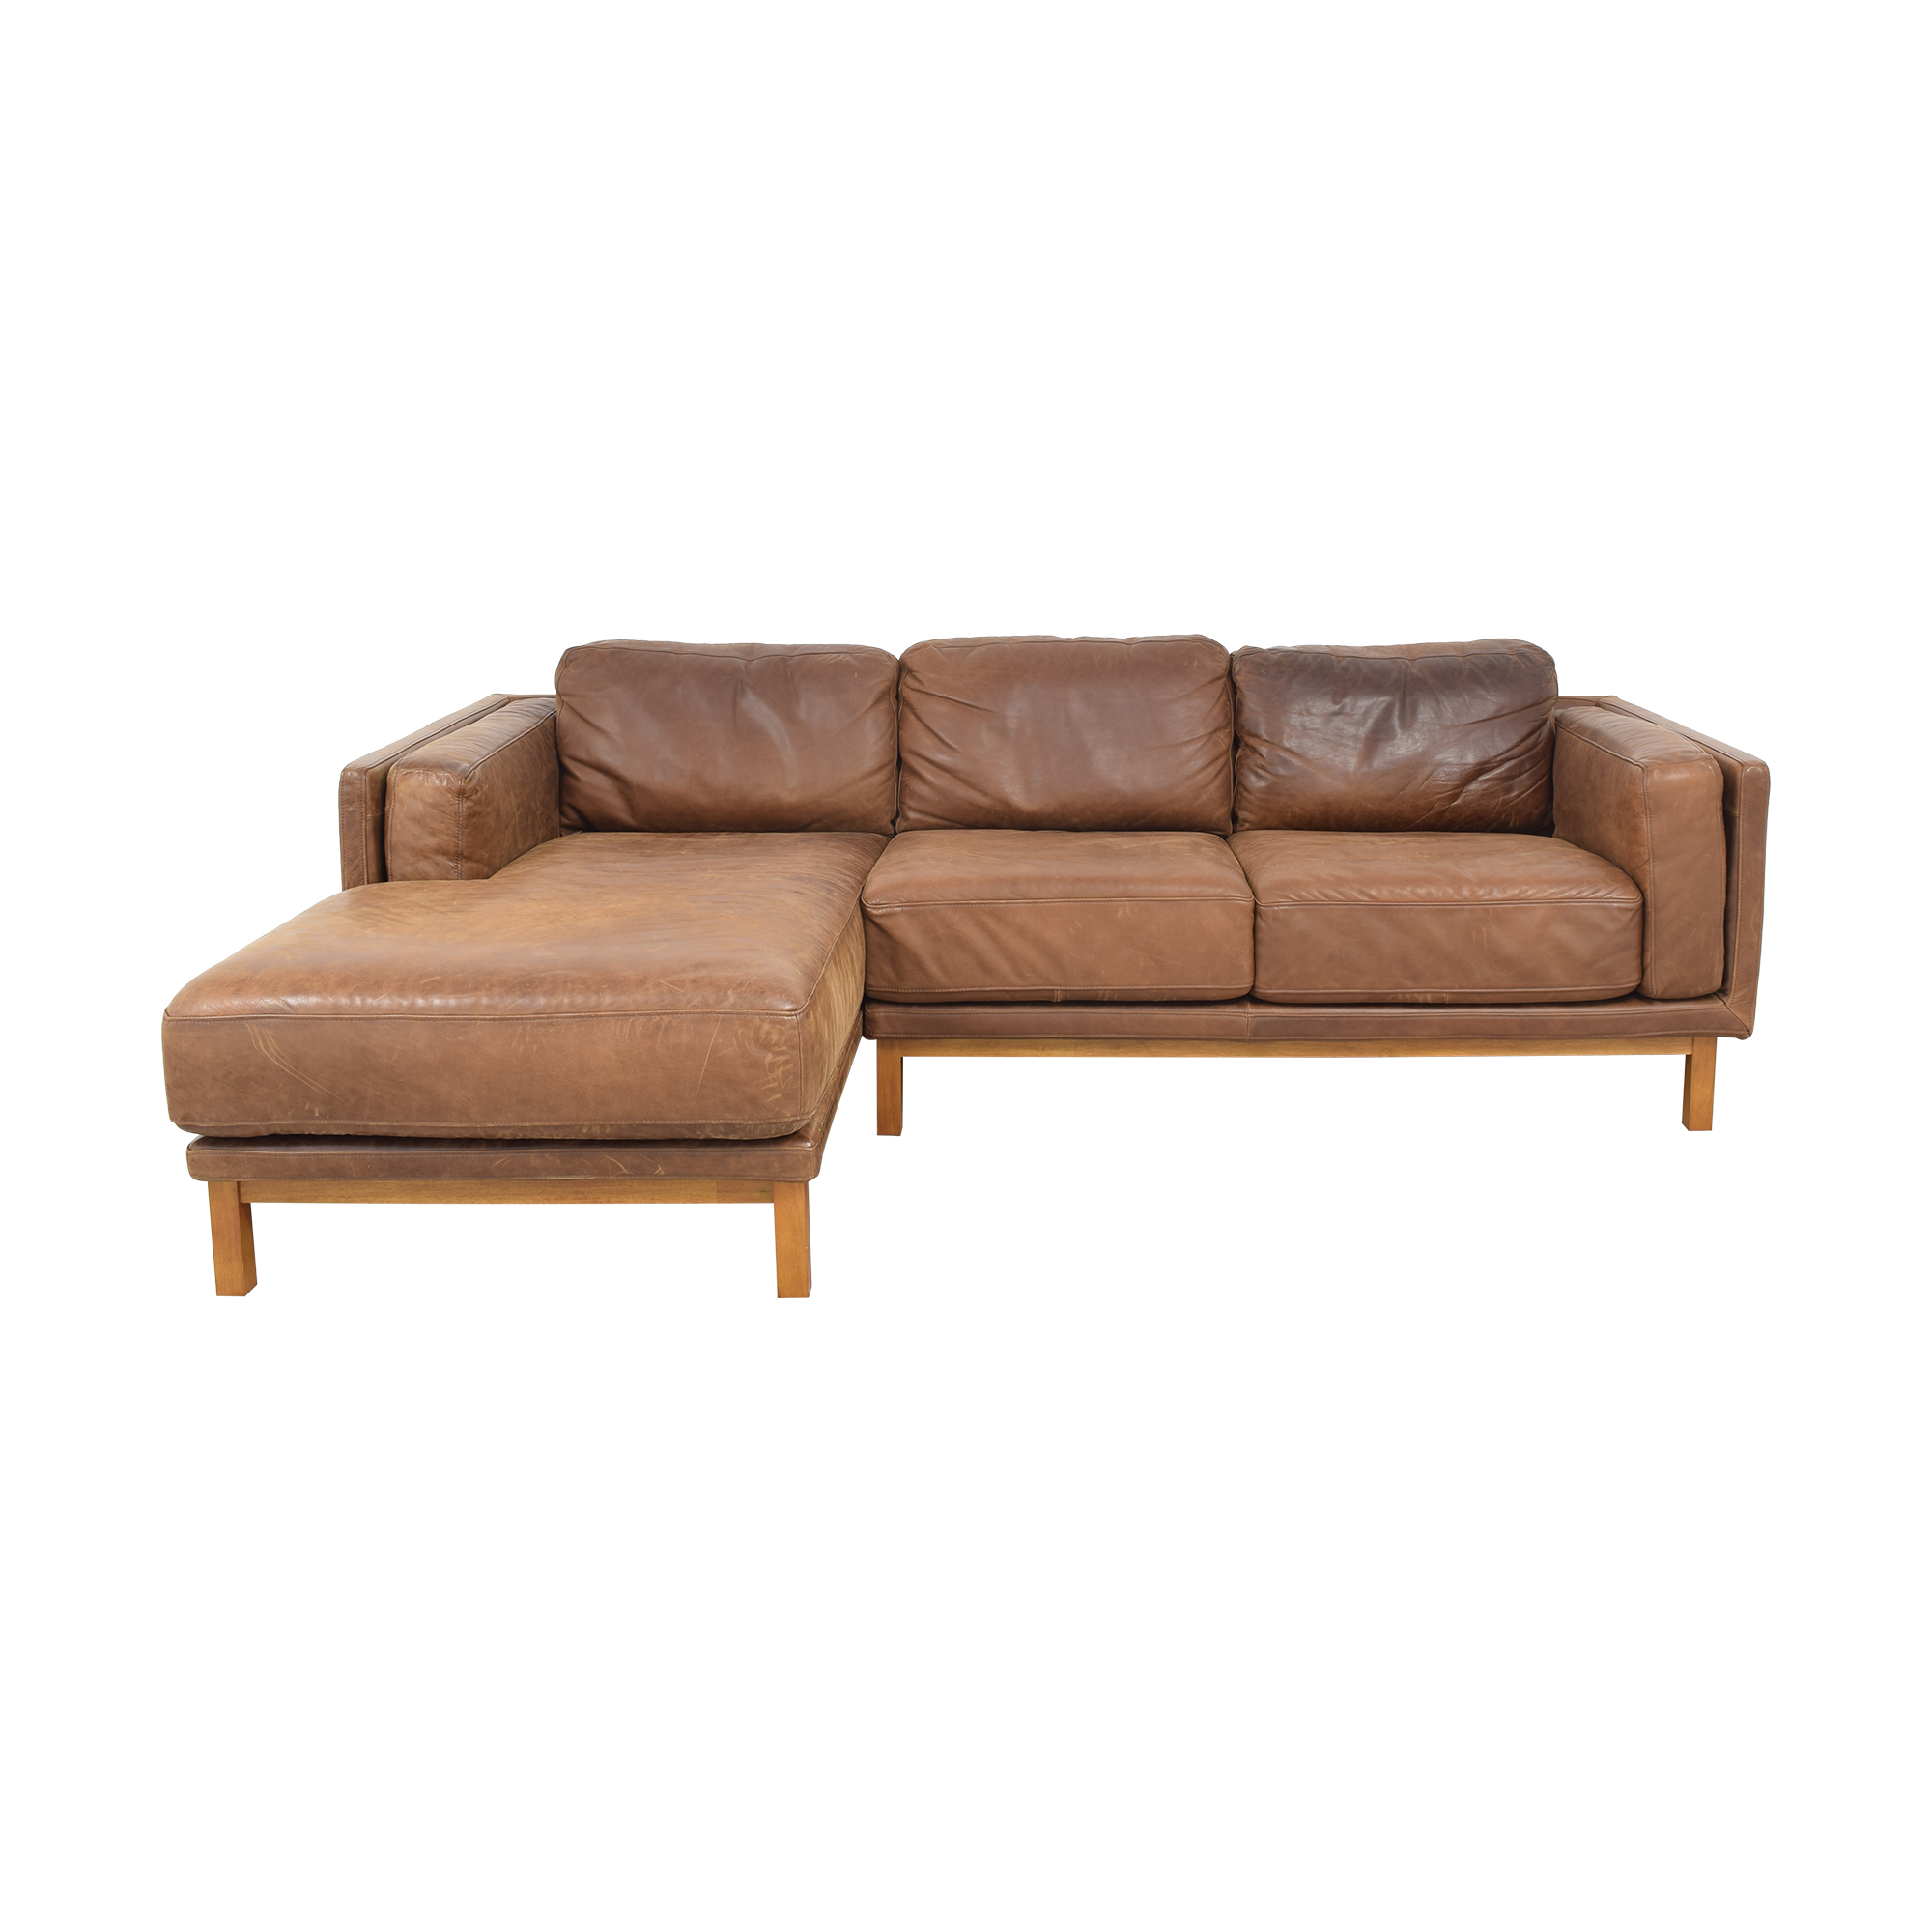 West Elm Dekalb Leather 2-Piece Chaise Sectional / Sectionals